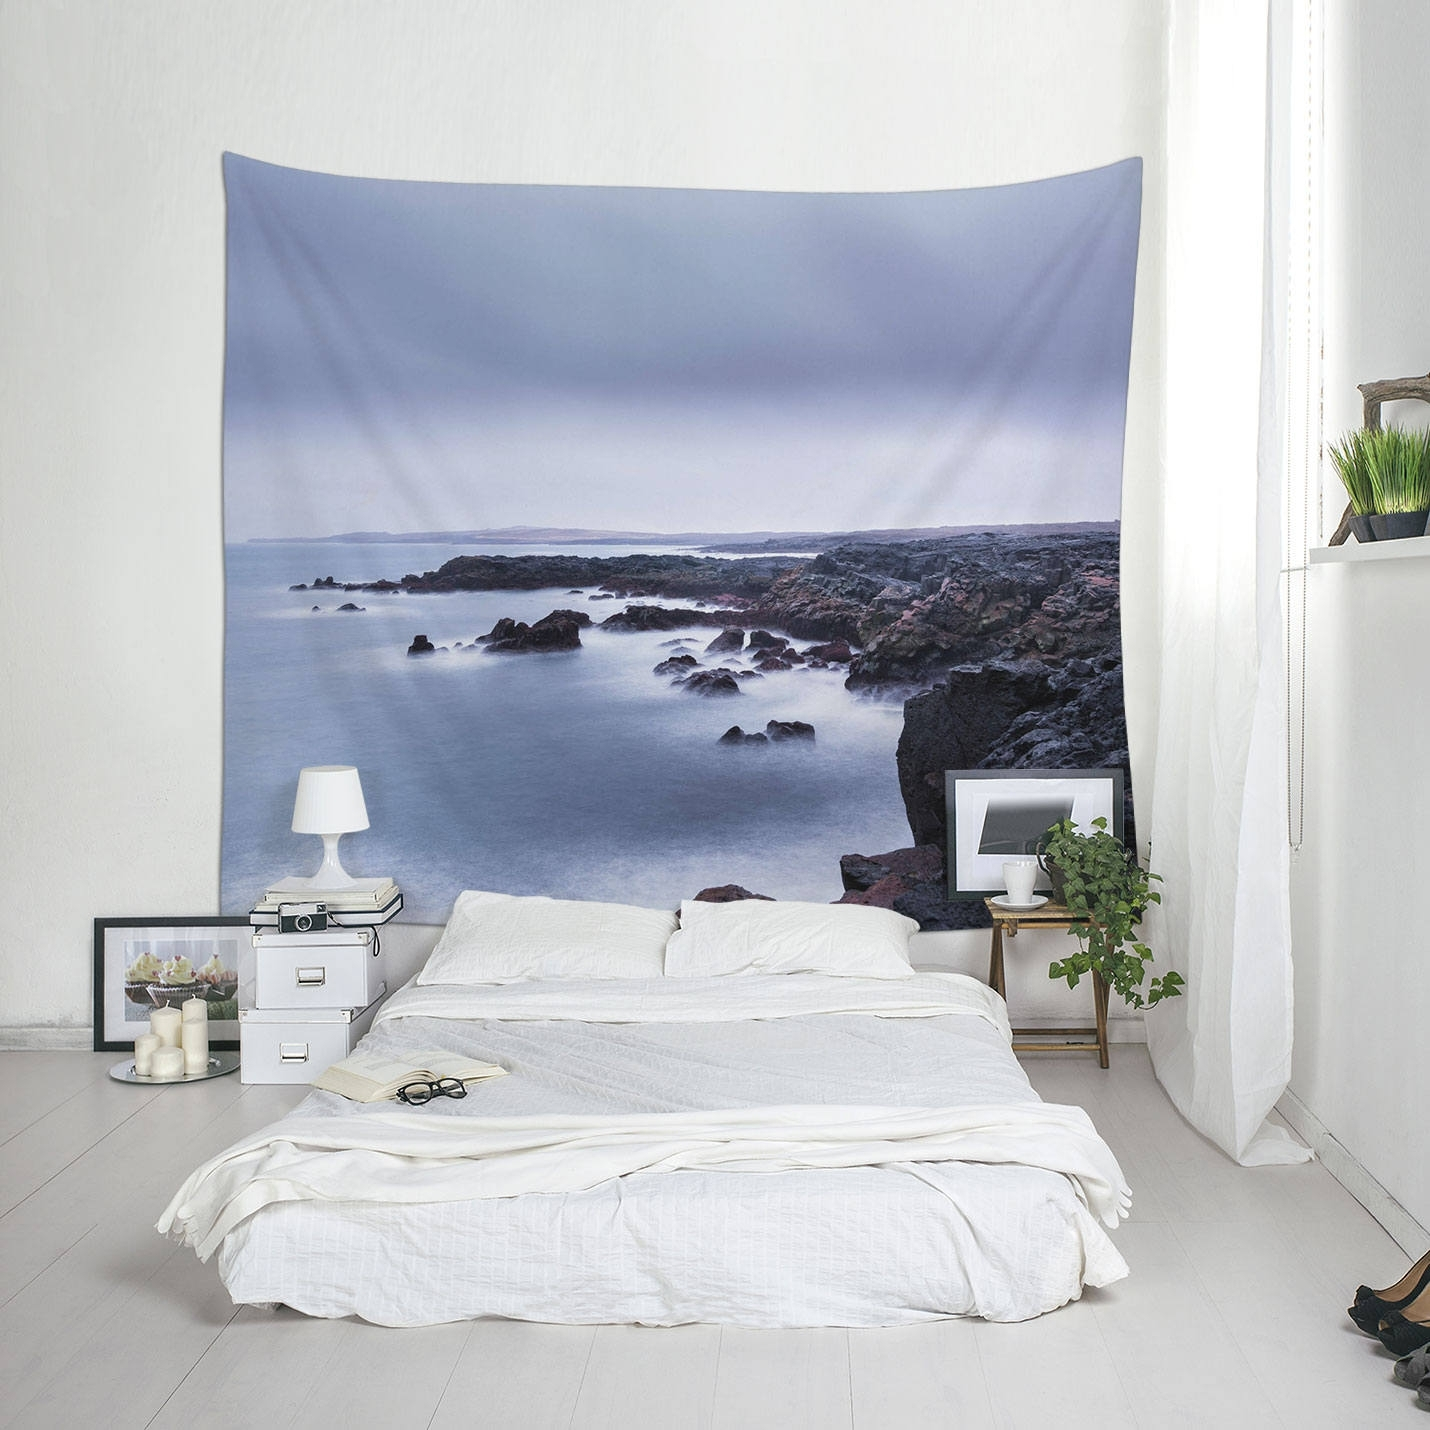 Coastal Tapestry, Iceland Coast, Landscape Wall Art, Fabric Pertaining To Recent Outdoor Fabric Wall Art (View 5 of 15)